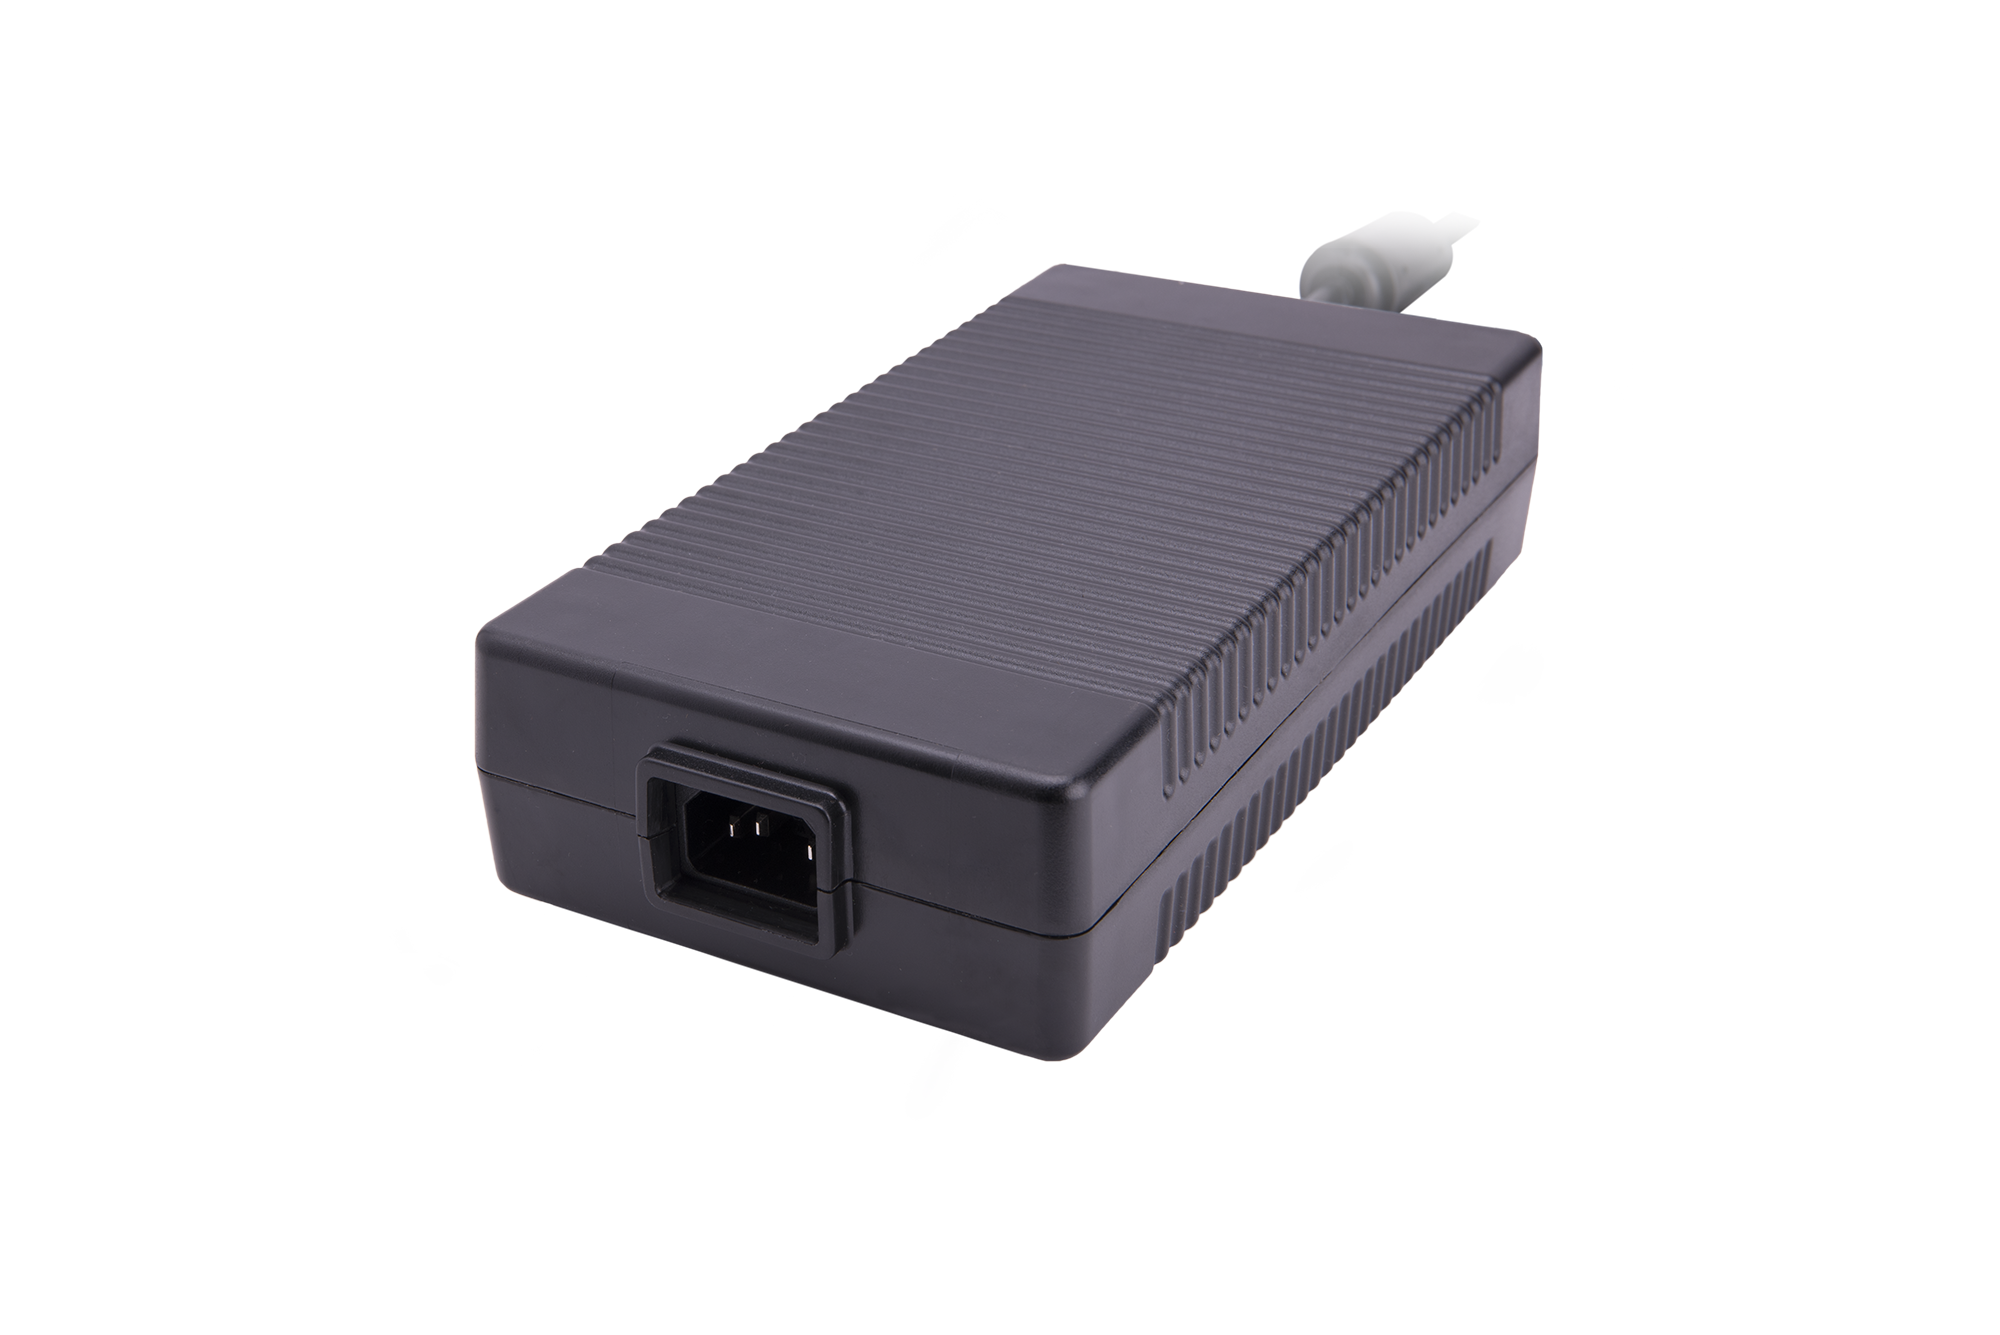 ME240A1251F01 SL Power 200 W, Single Output, 12 VDC@16.6 A Medical Enclosed AC-DC Power Supply